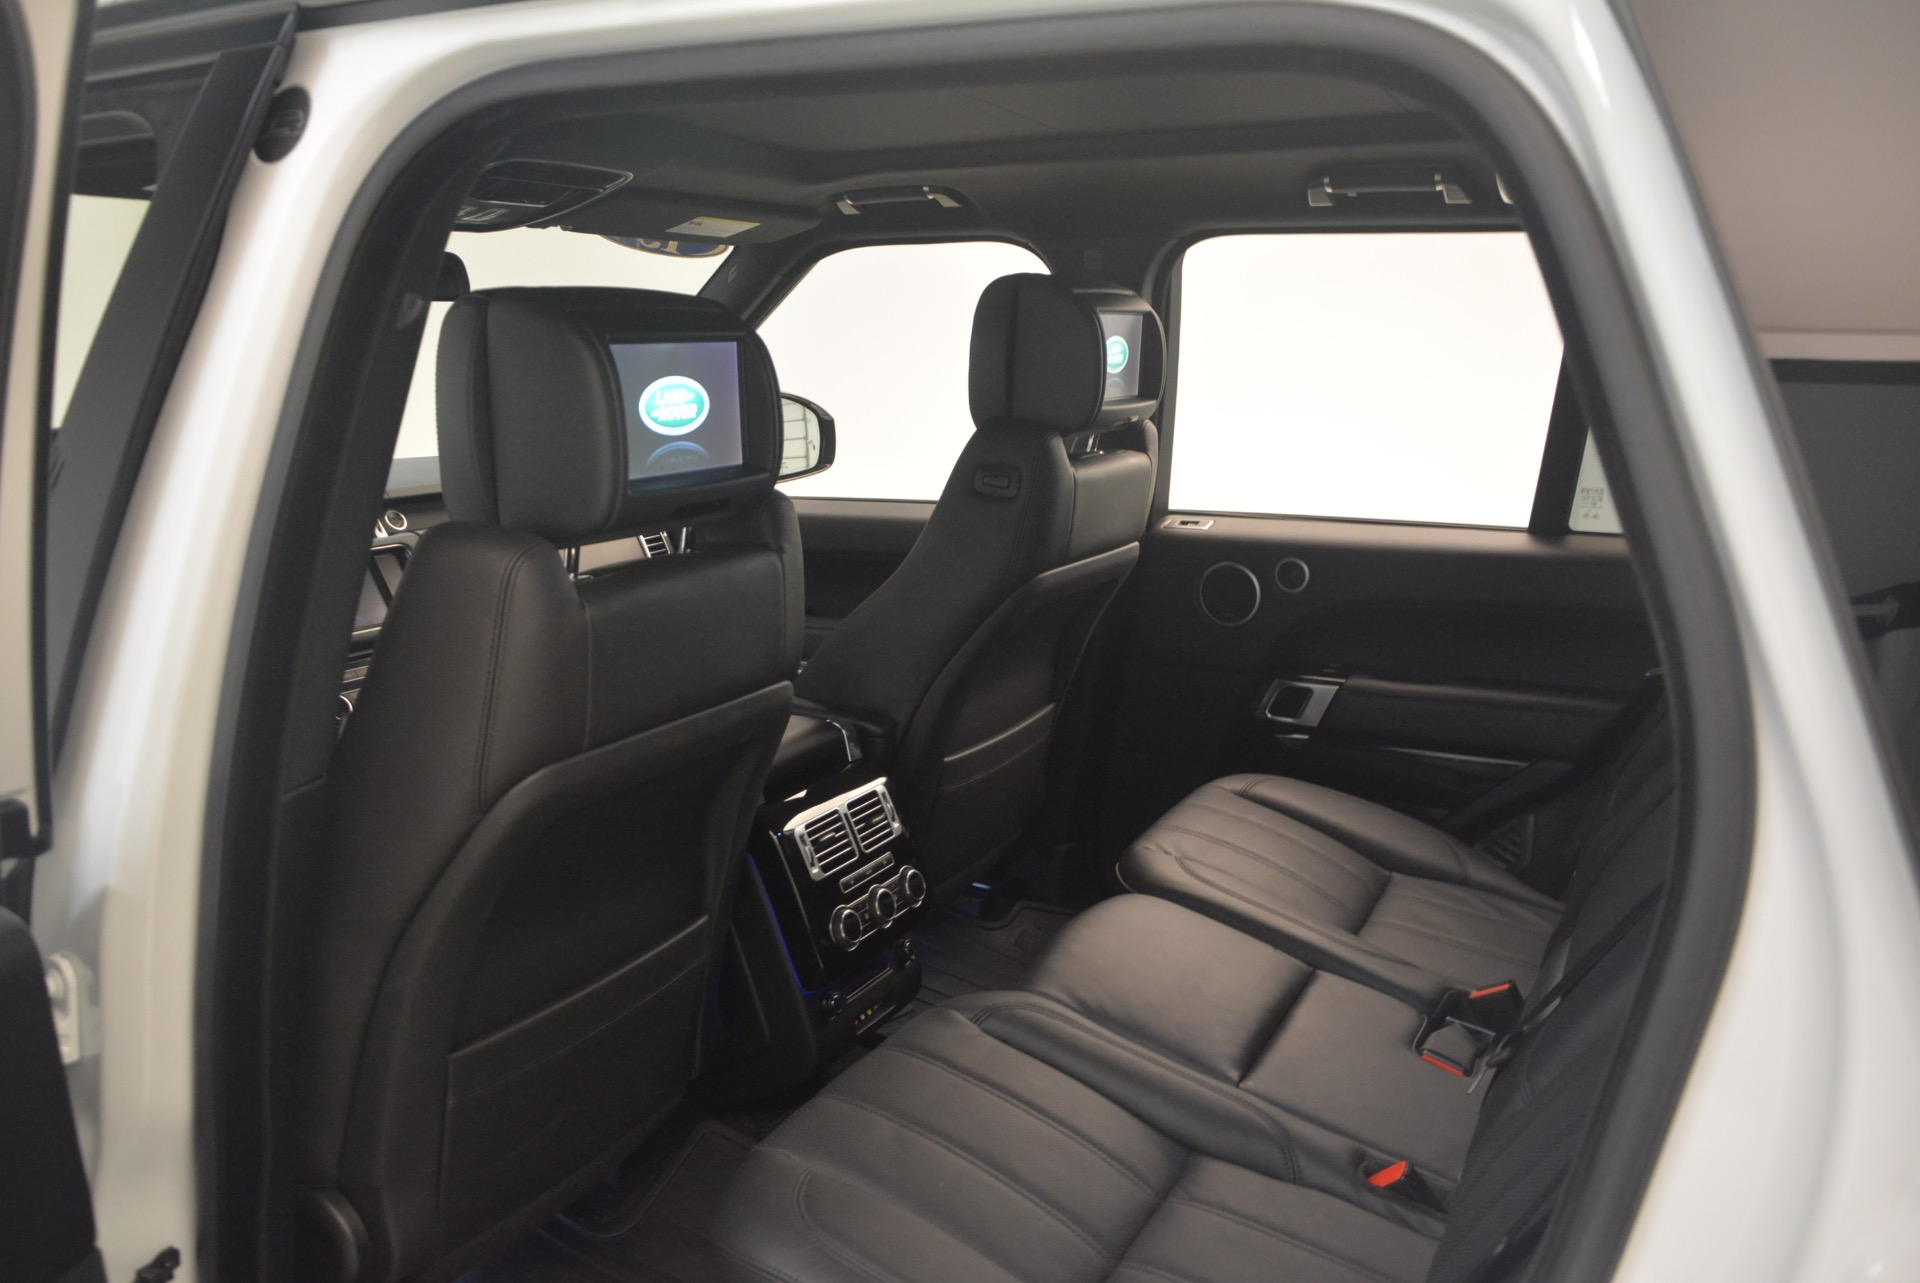 Used 2015 Land Rover Range Rover Supercharged For Sale In Westport, CT 1292_p22